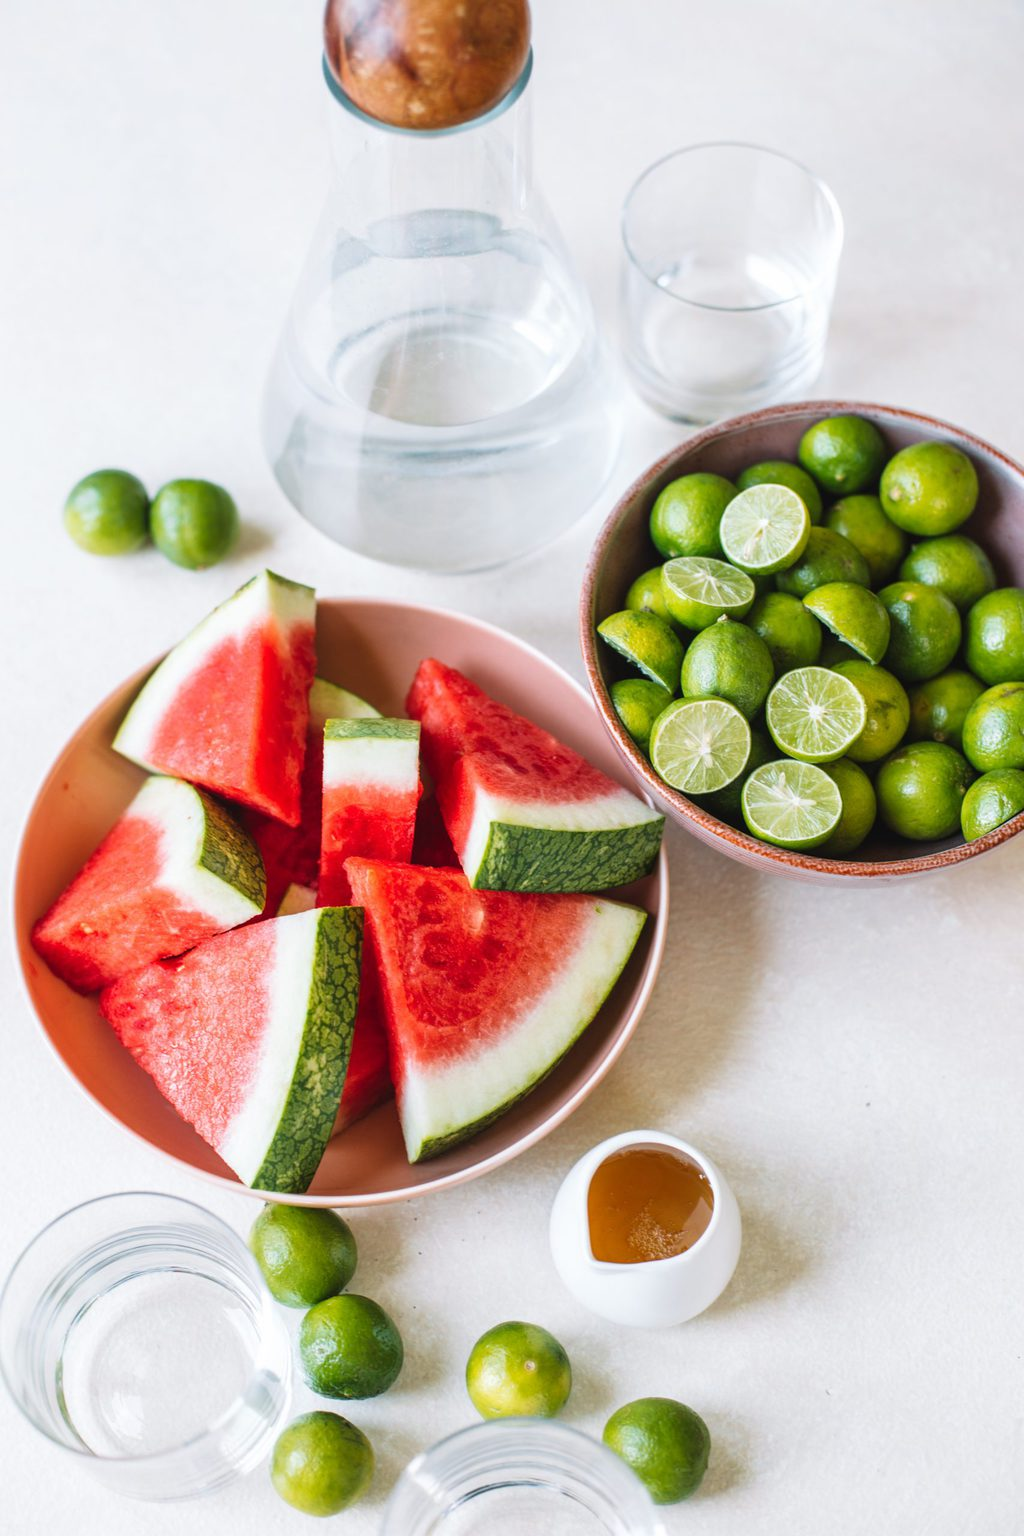 Bowls of watermelon and limes with agave and vodka.